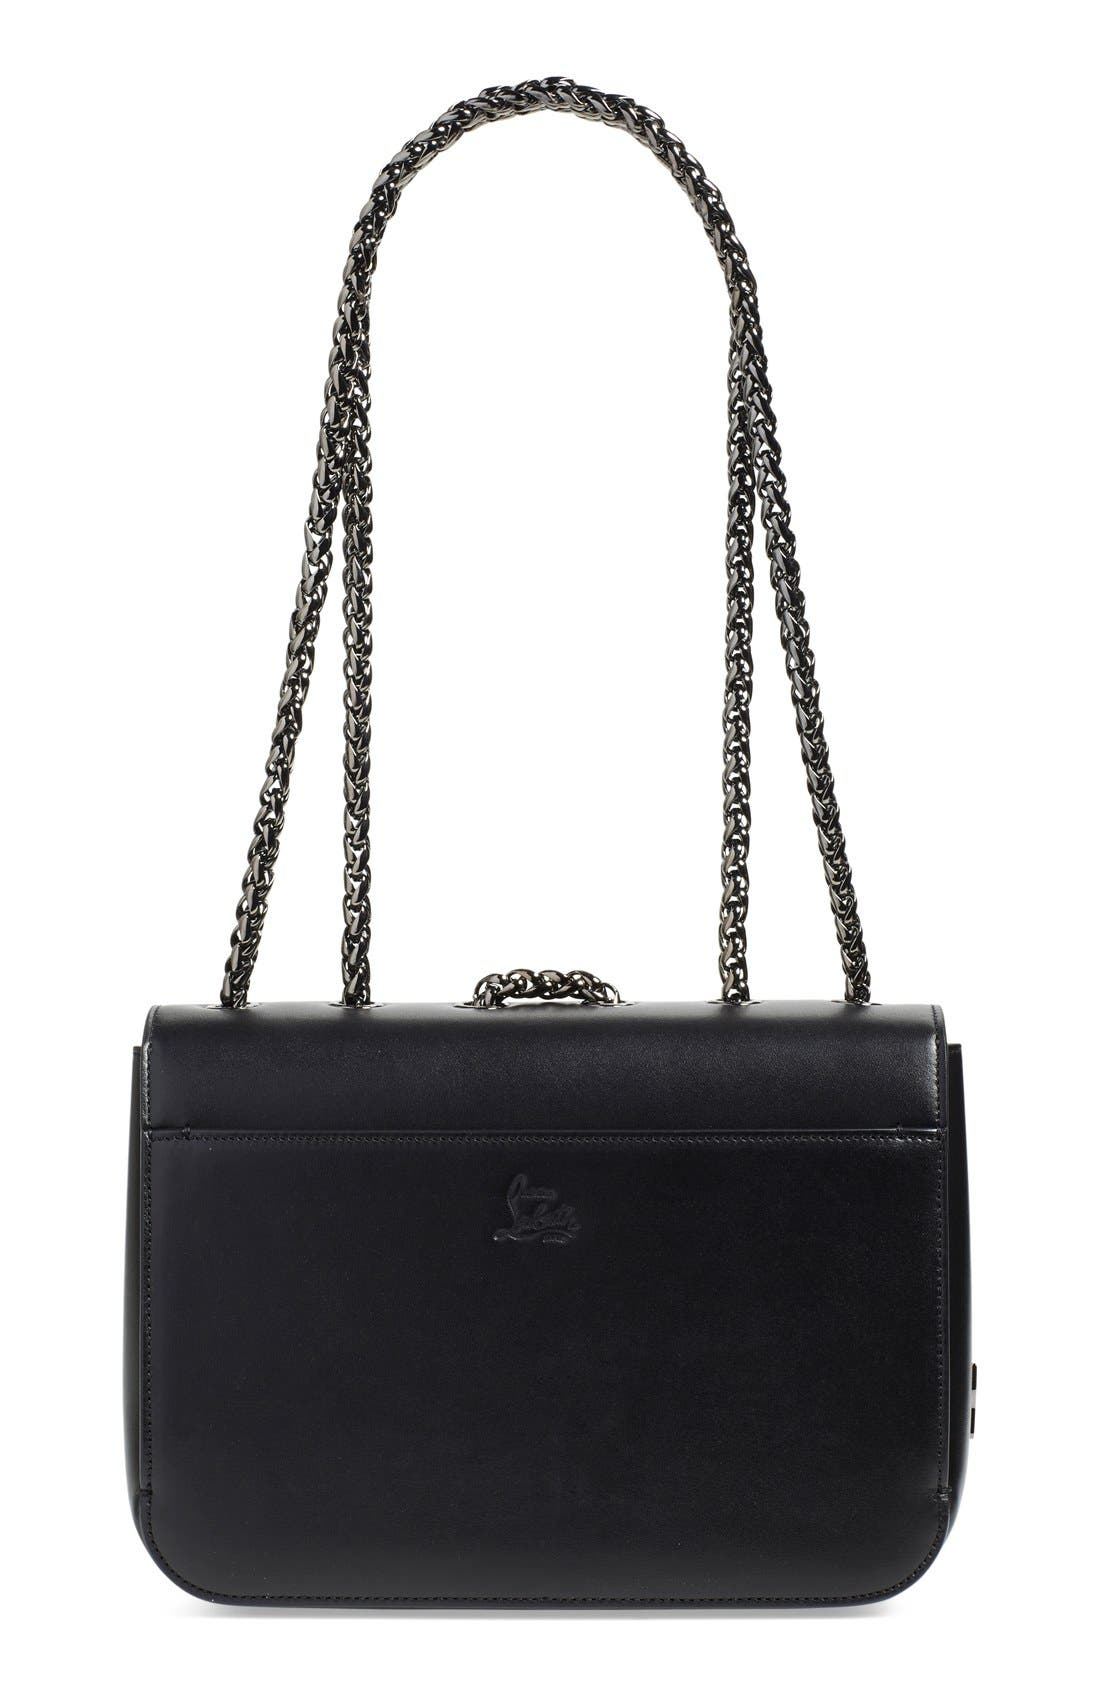 Alternate Image 2  - Christian Louboutin 'Small Sweet Charity' Spiked Bow Flap Shoulder Bag